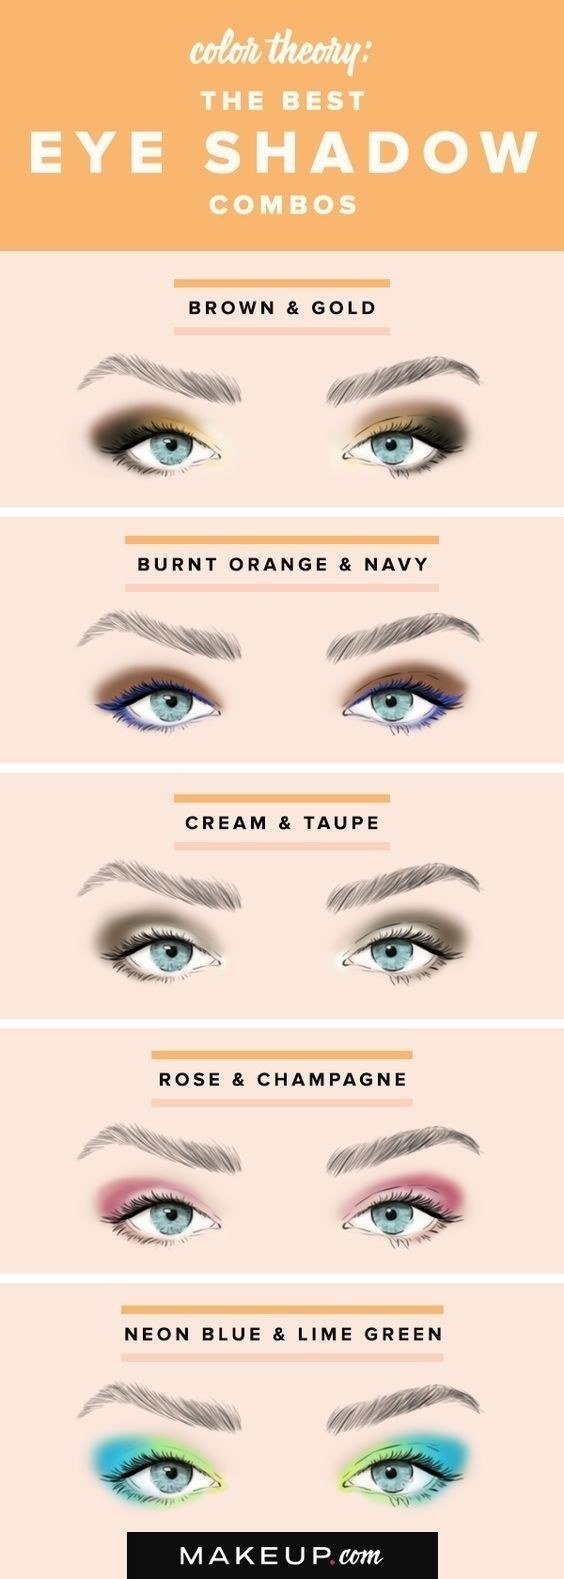 Try out some cool new eye shadow color combos. YOLO!